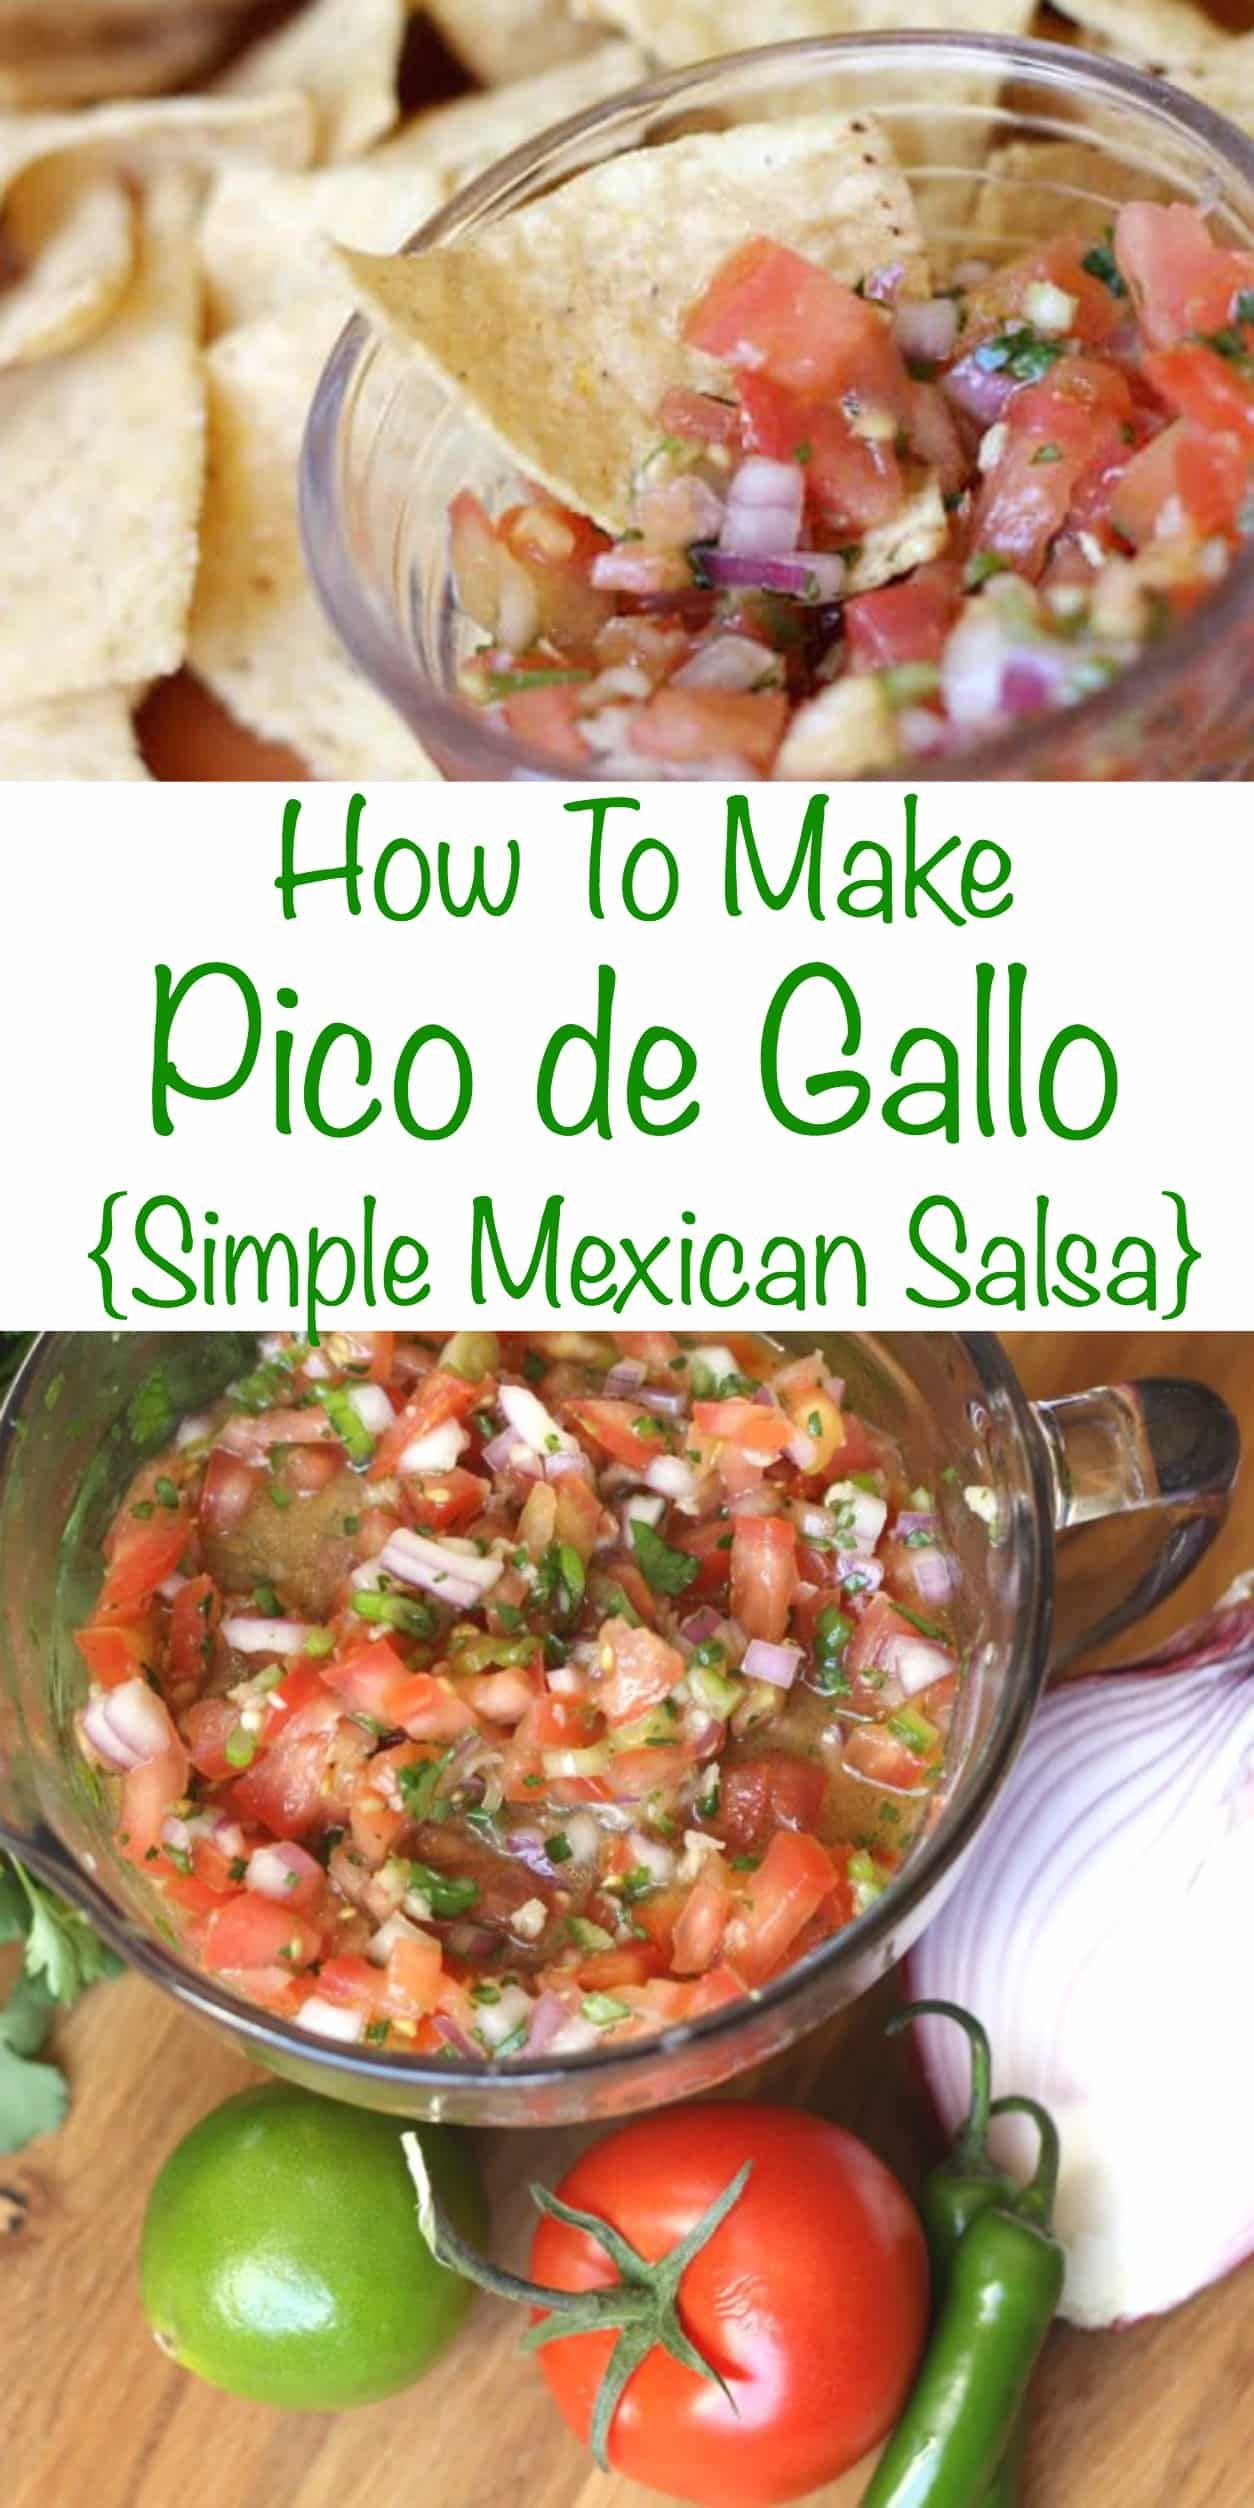 How To Make Pico De Gallo (simple Mexican salsa) - get the recipe at barefeetinthekitchen.com #picodegallorecipes